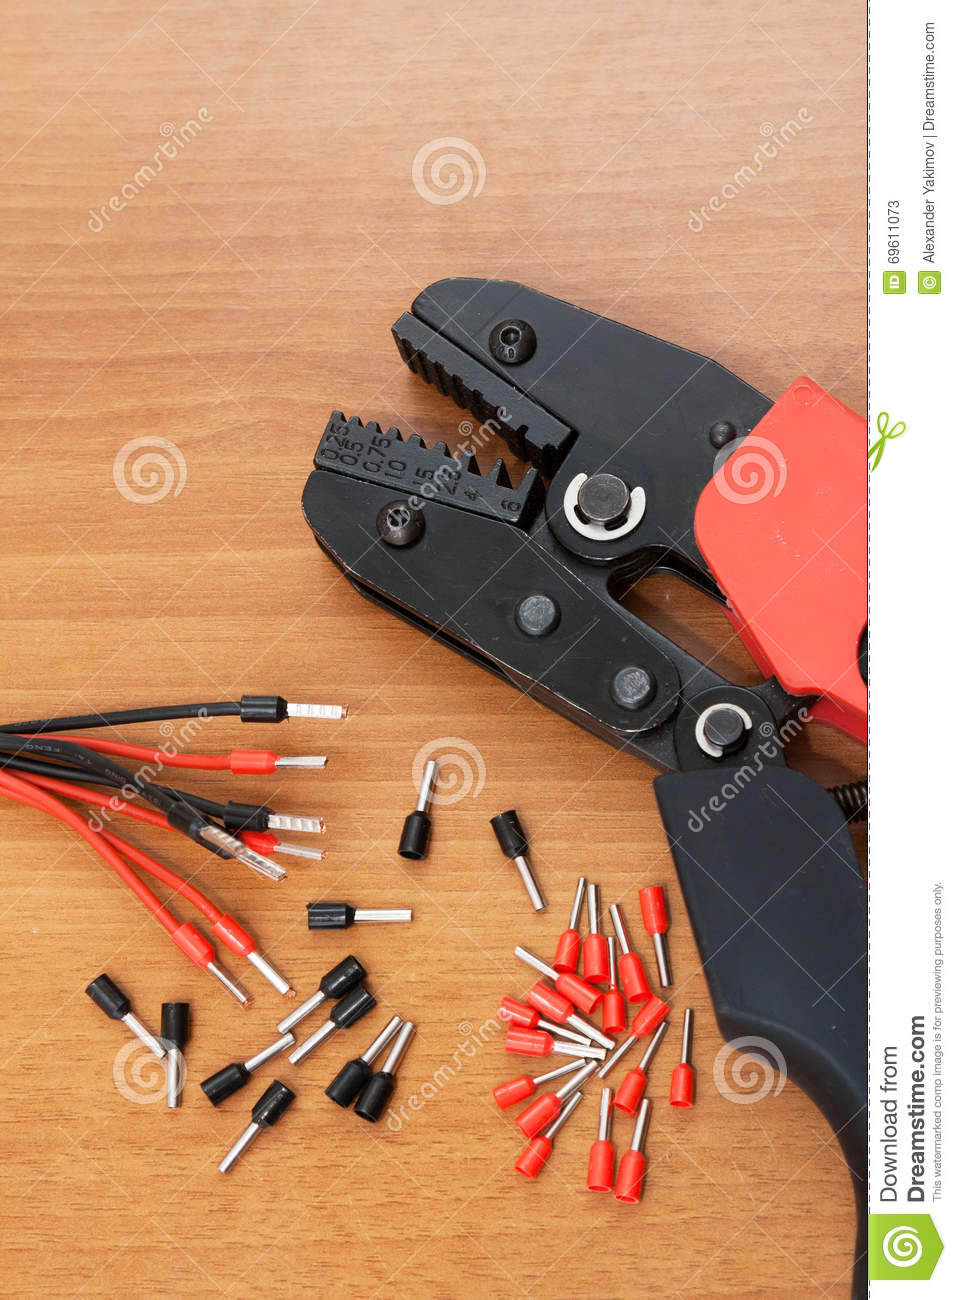 Awe Inspiring Installation Tool Crimp Terminals For The Cable Stock Image Wiring 101 Akebretraxxcnl